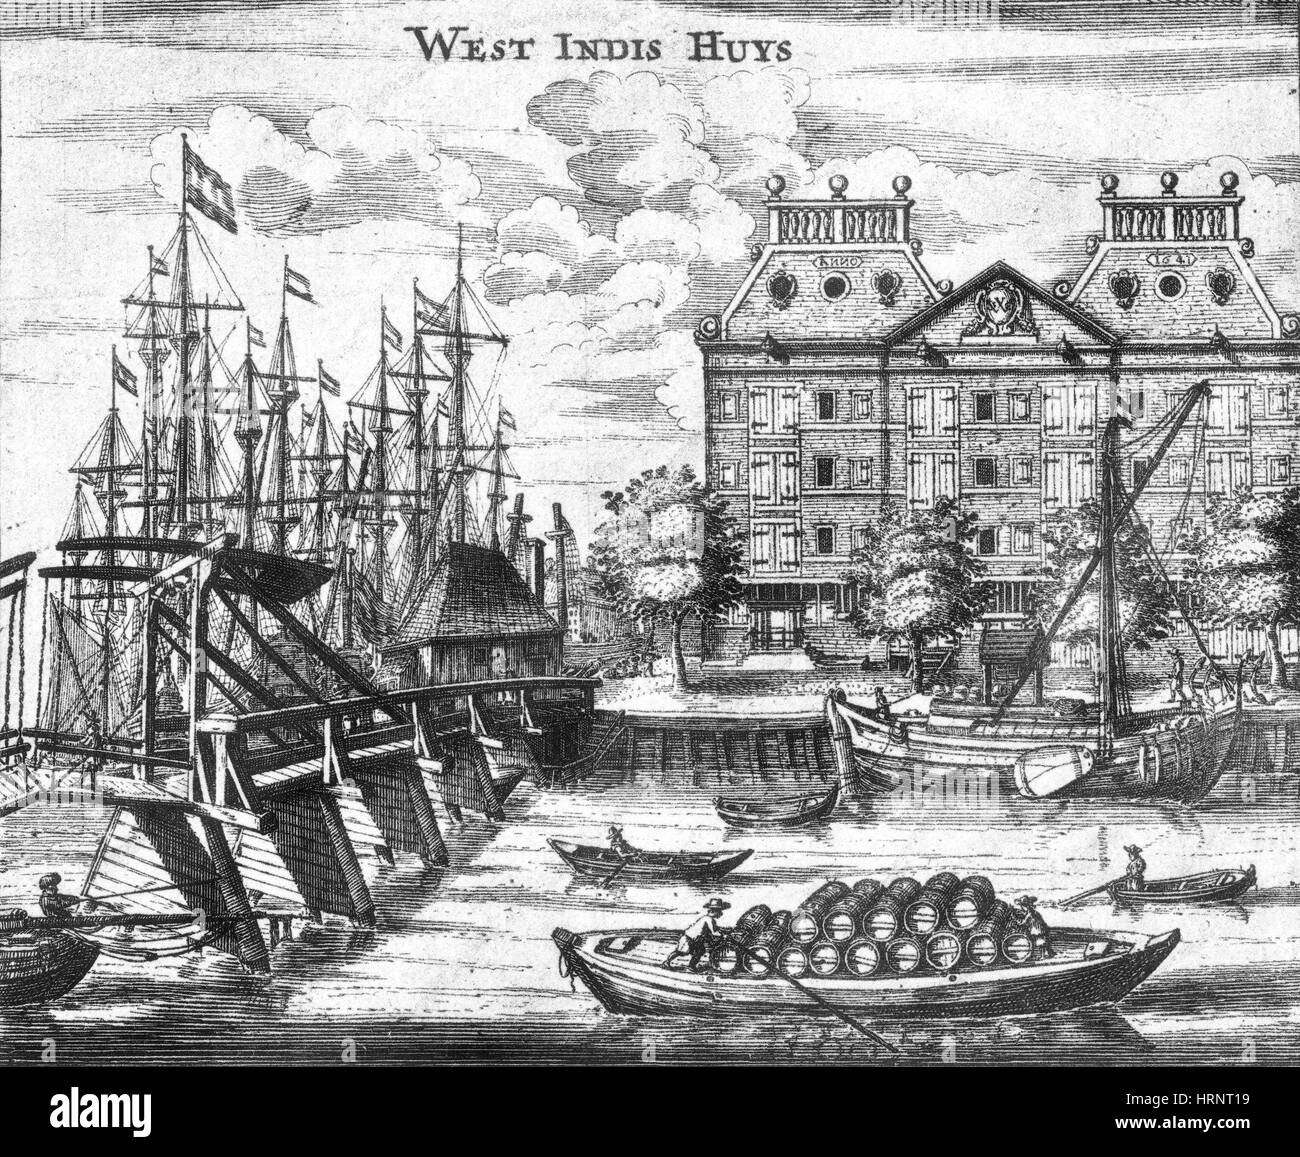 Dutch West India Company Warehouse, 17th Century - Stock Image